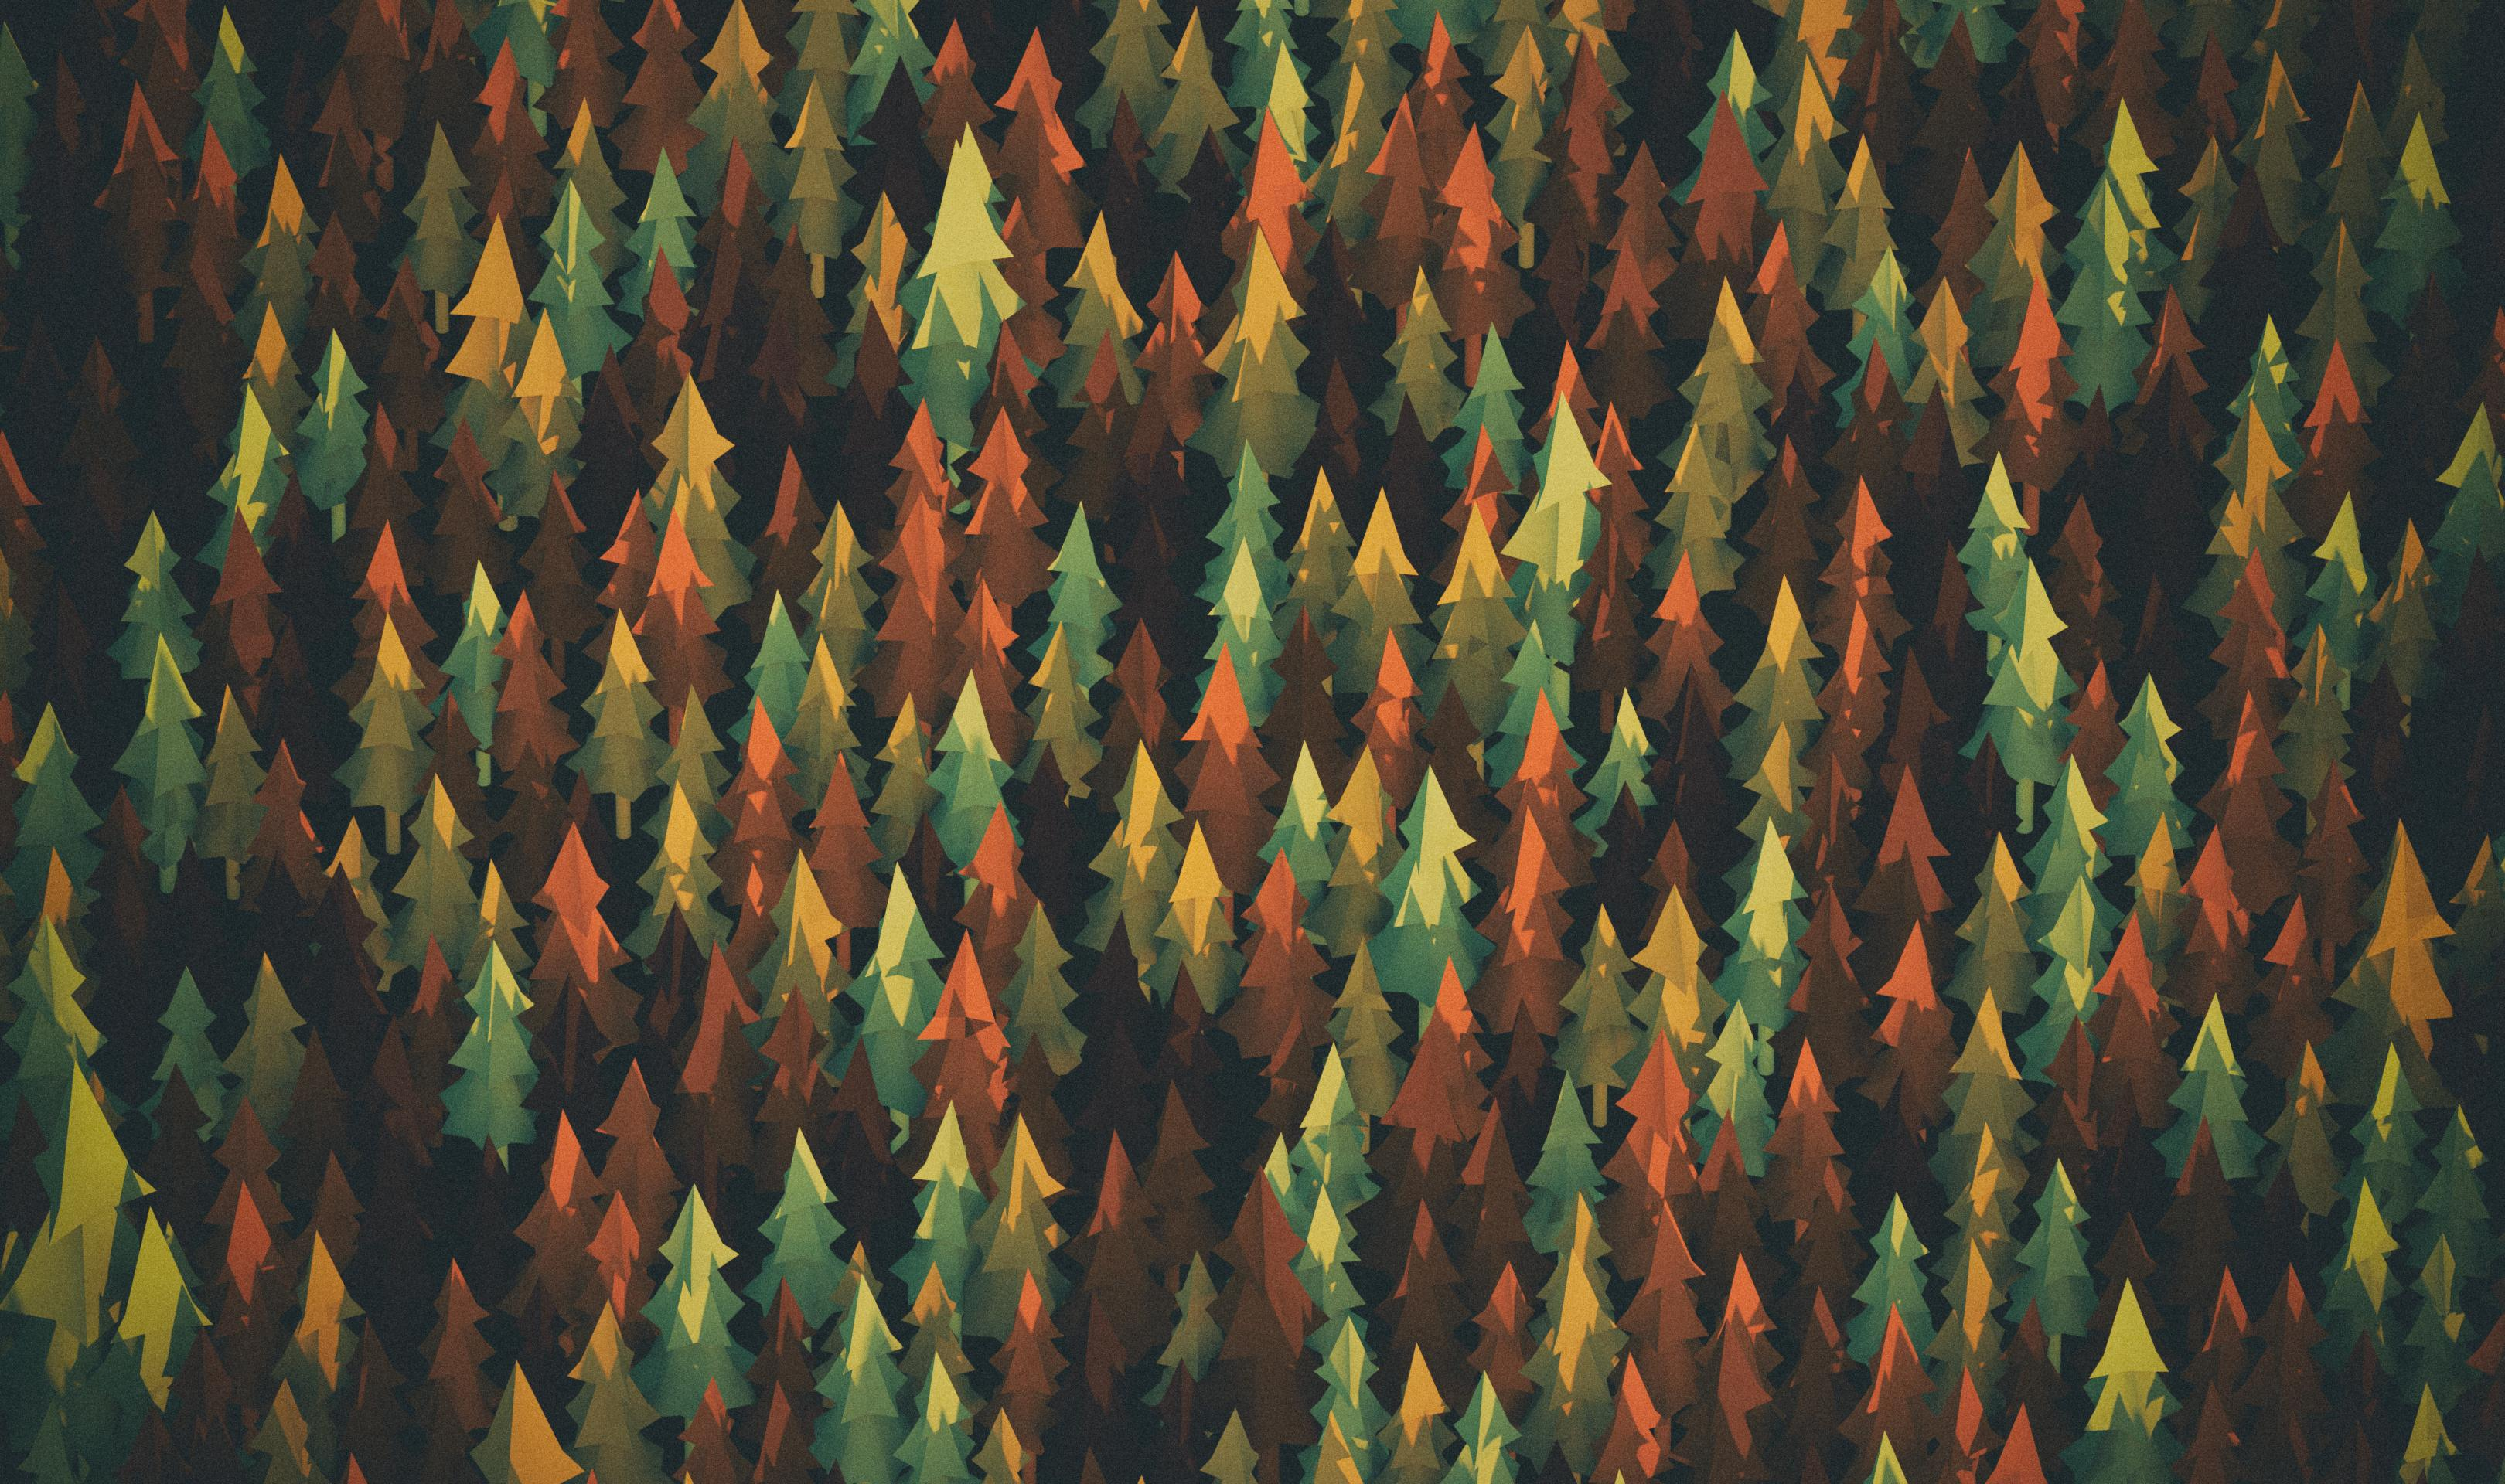 3240x1920 5018966 #material, #forest, #abstract, #artist | Artistic ...